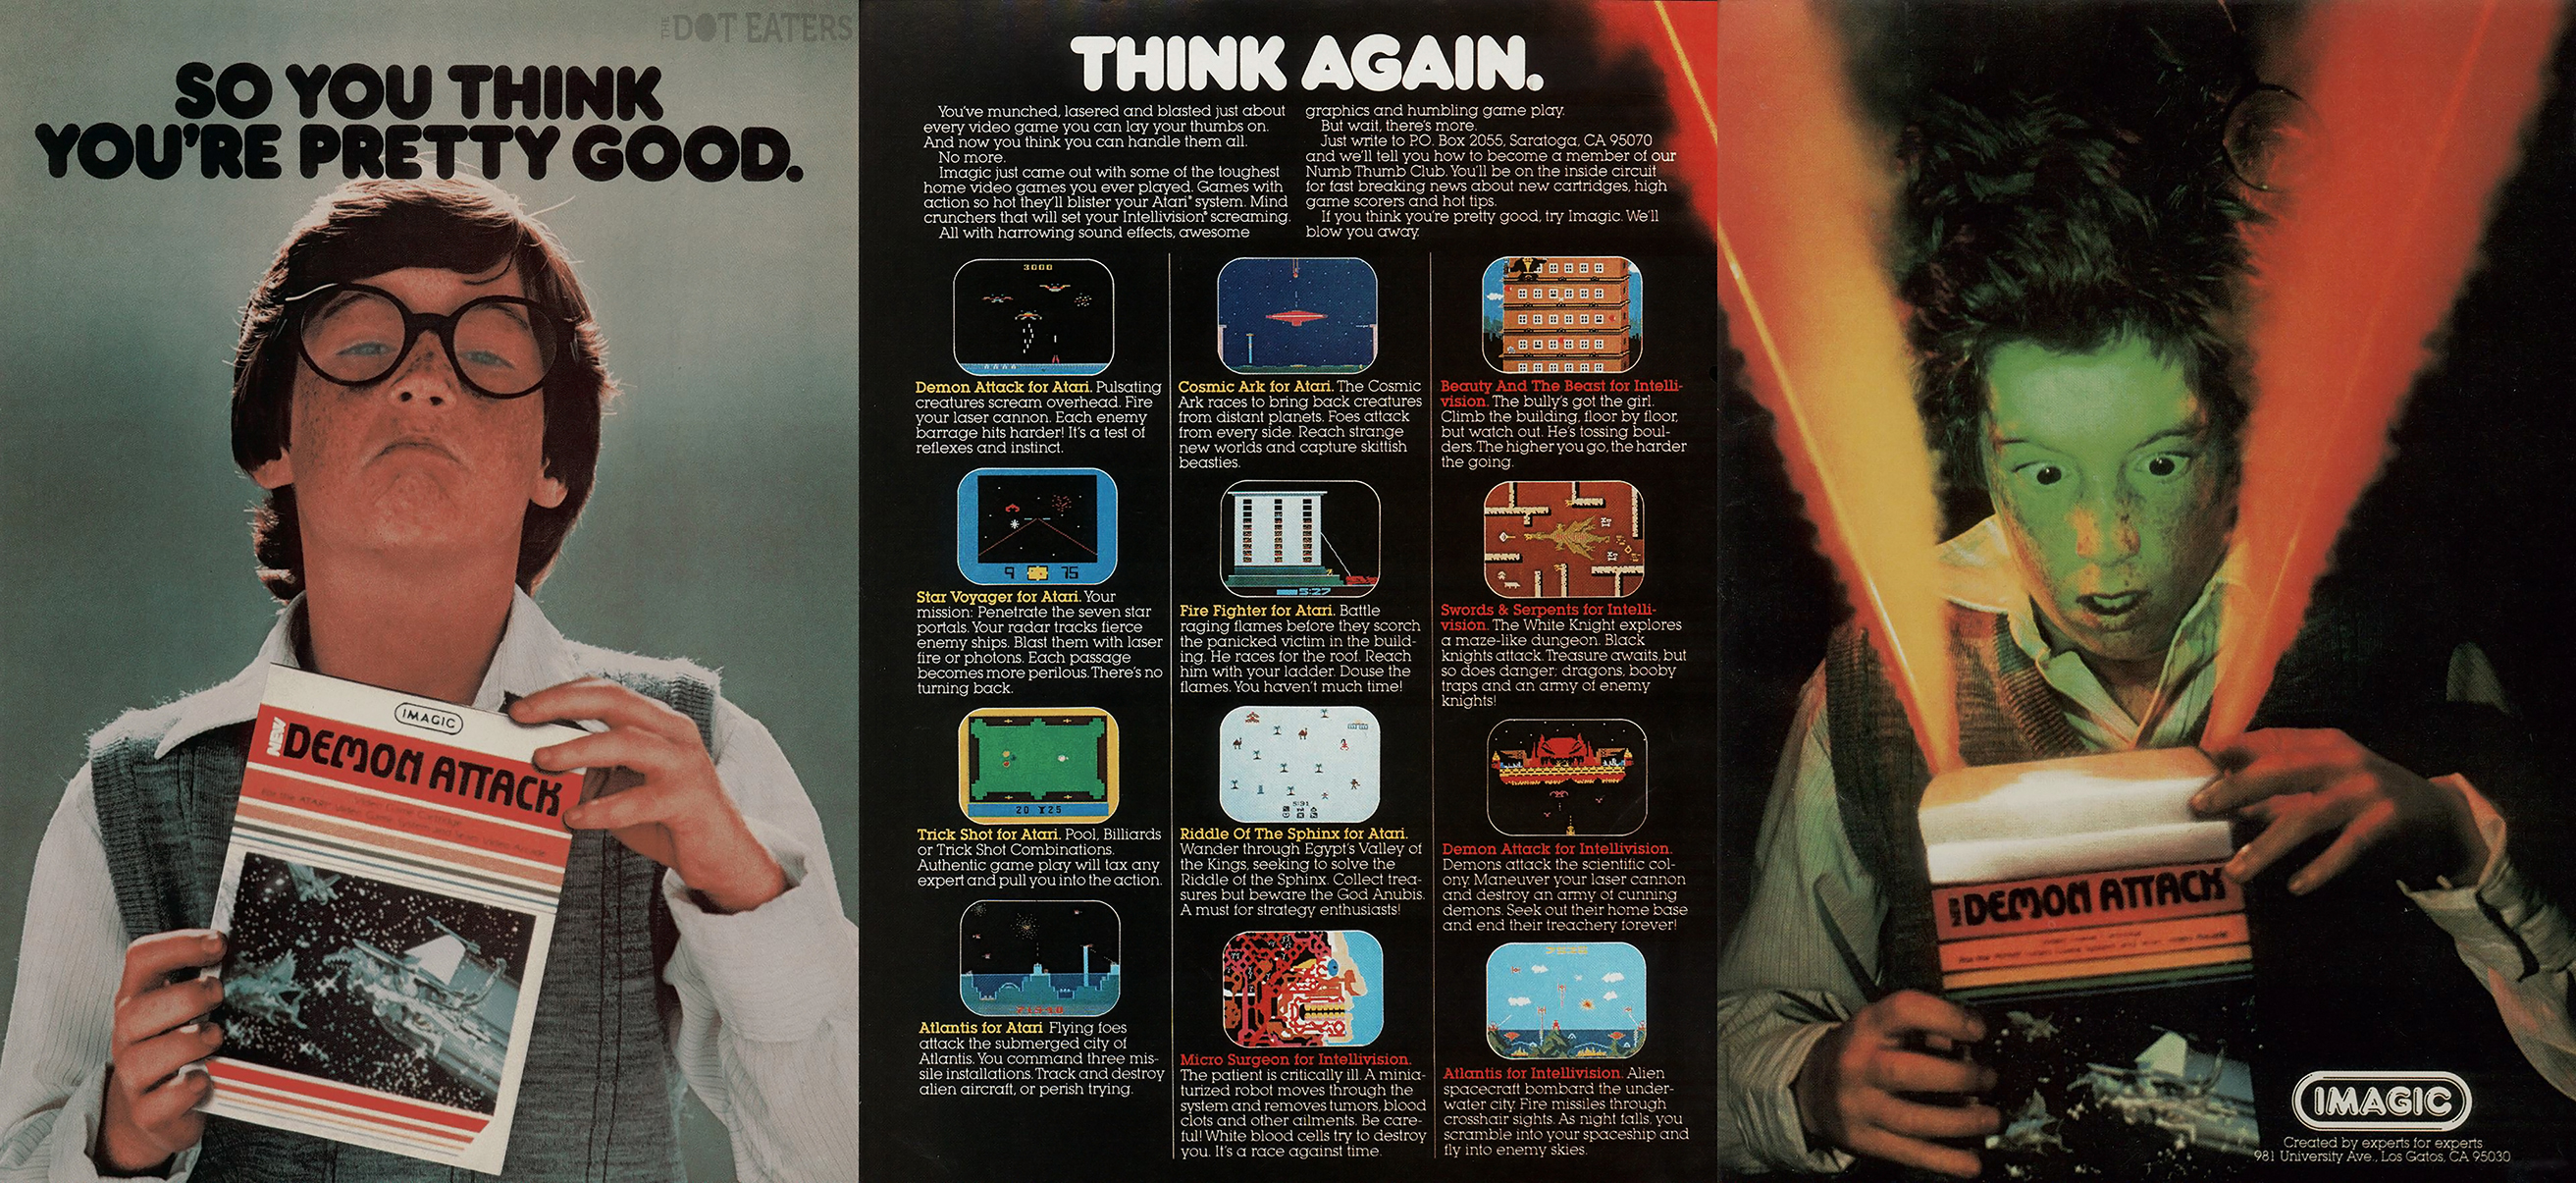 Ad for Imagic, a video game company